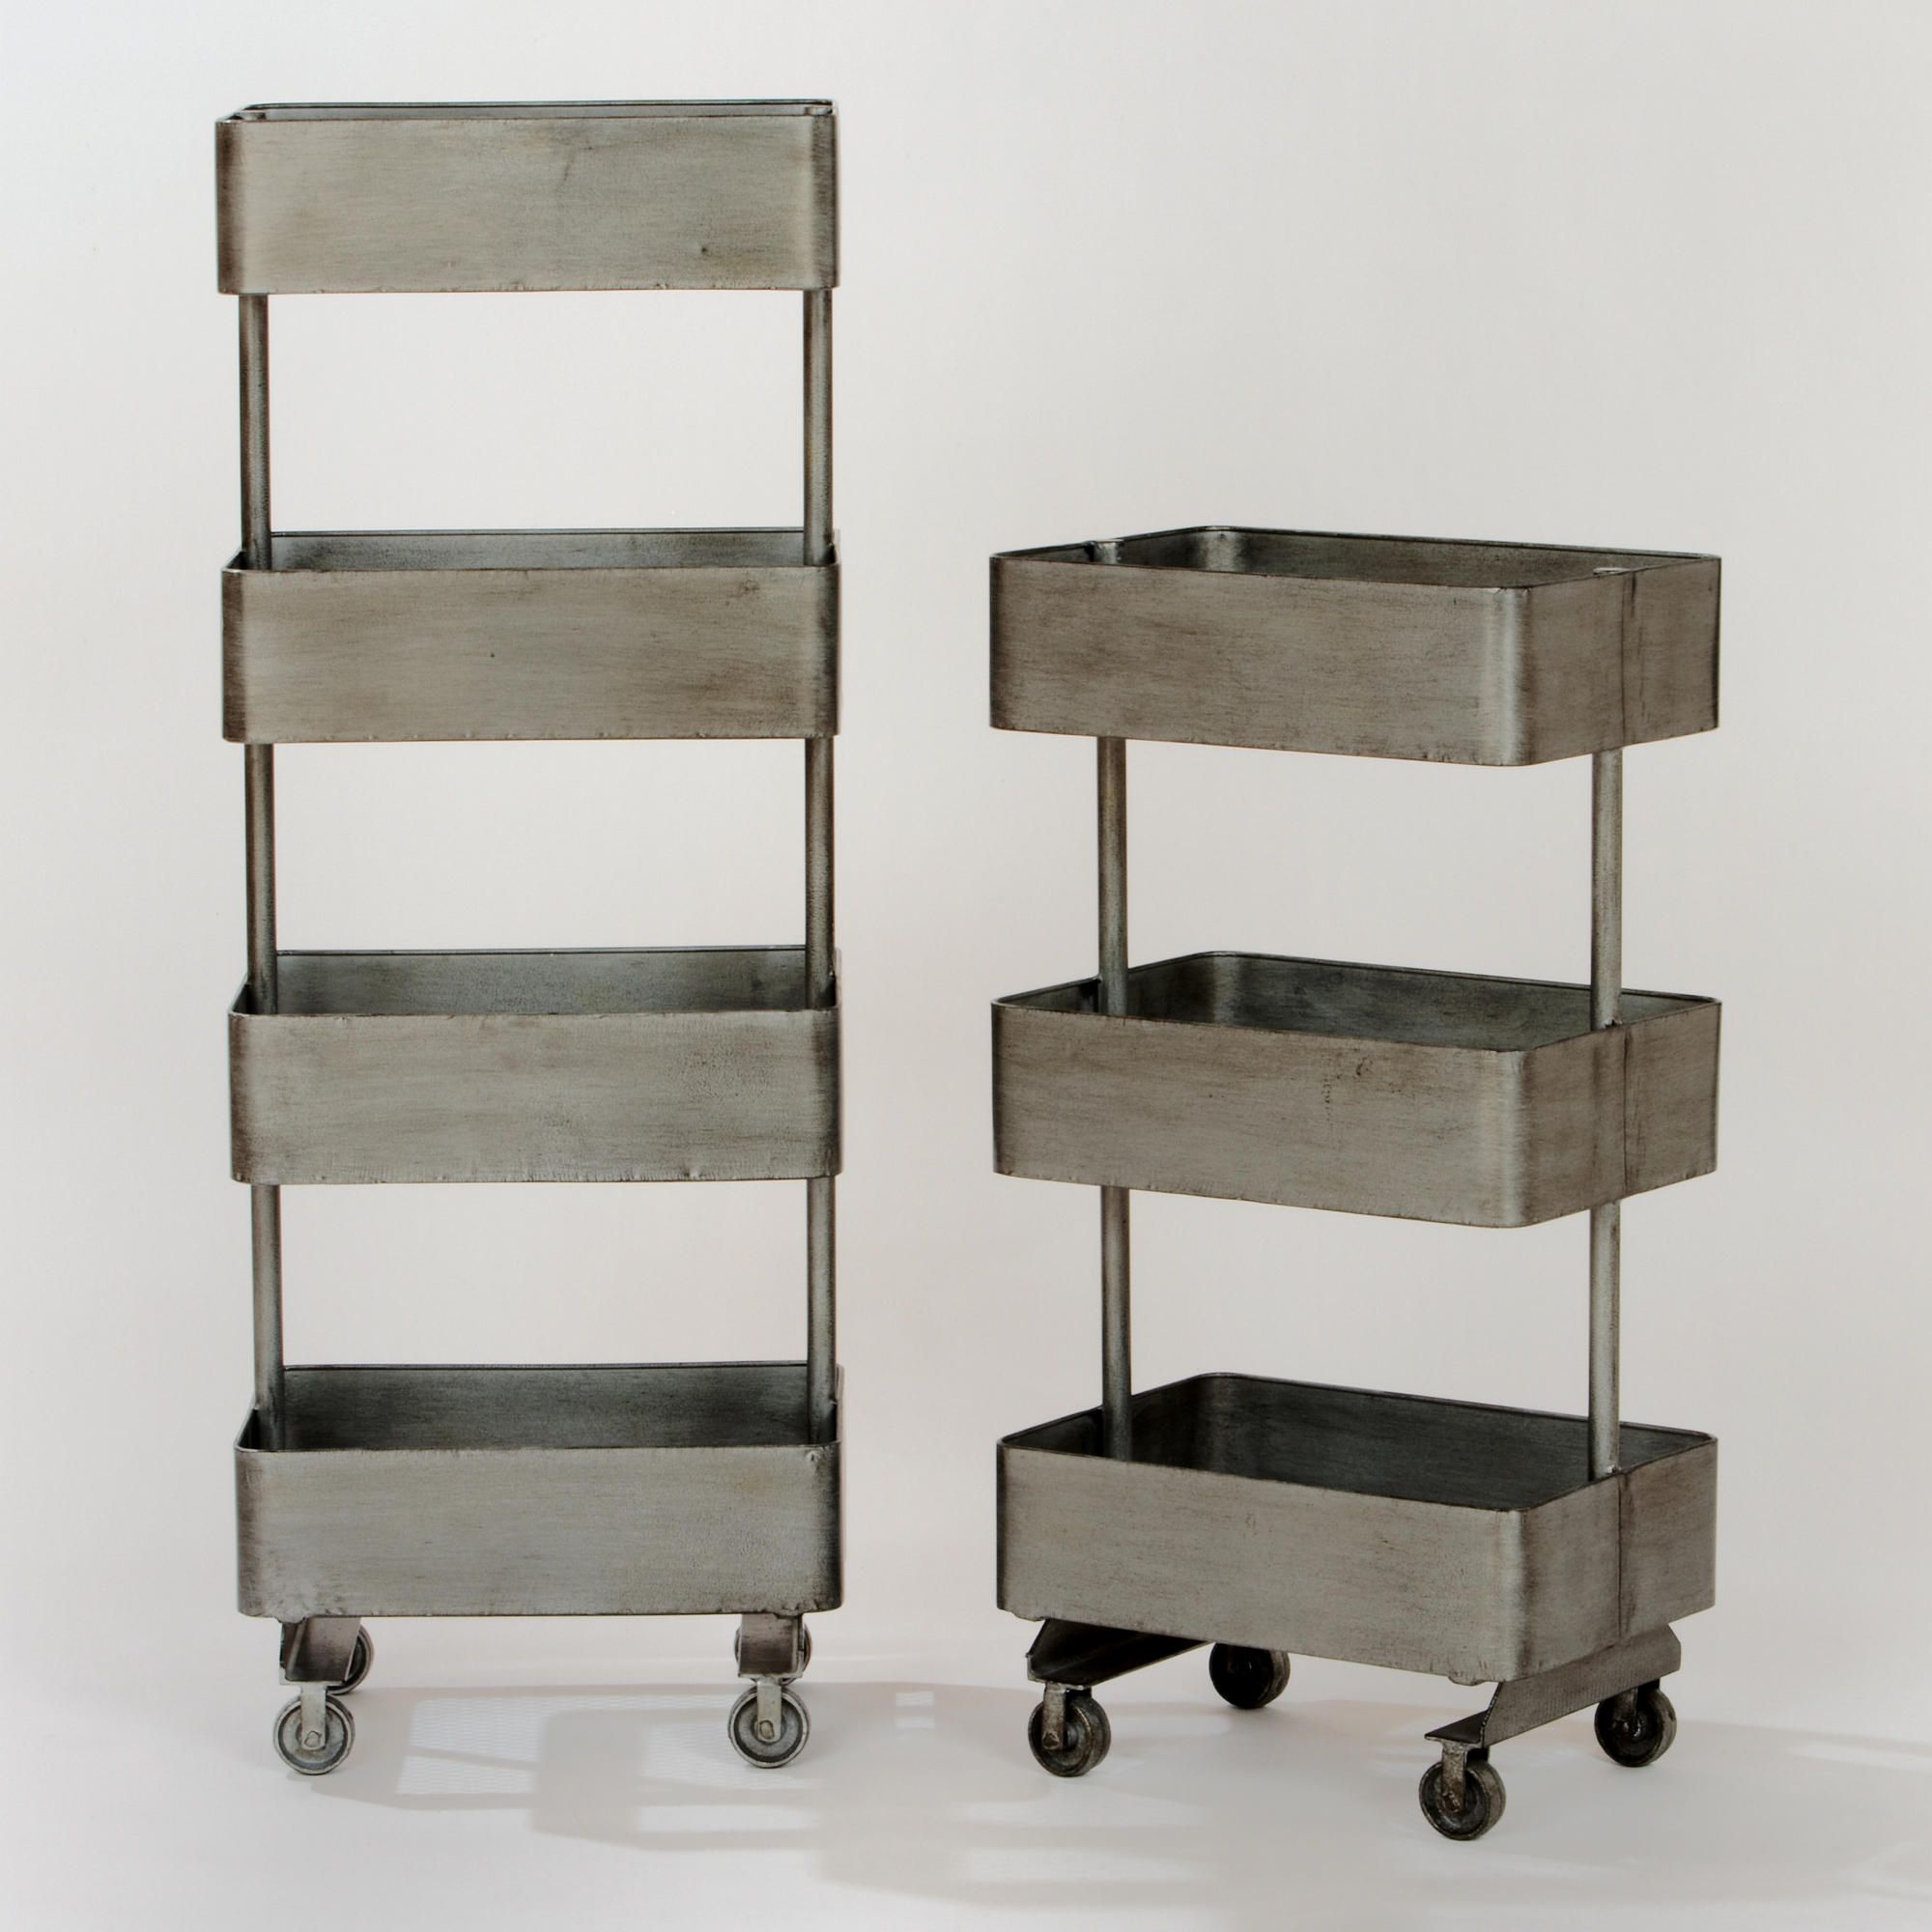 Jayden Metal Shelf Units   World Market  63  79. Jayden Metal Shelf Units   World Market  63  79   Storage